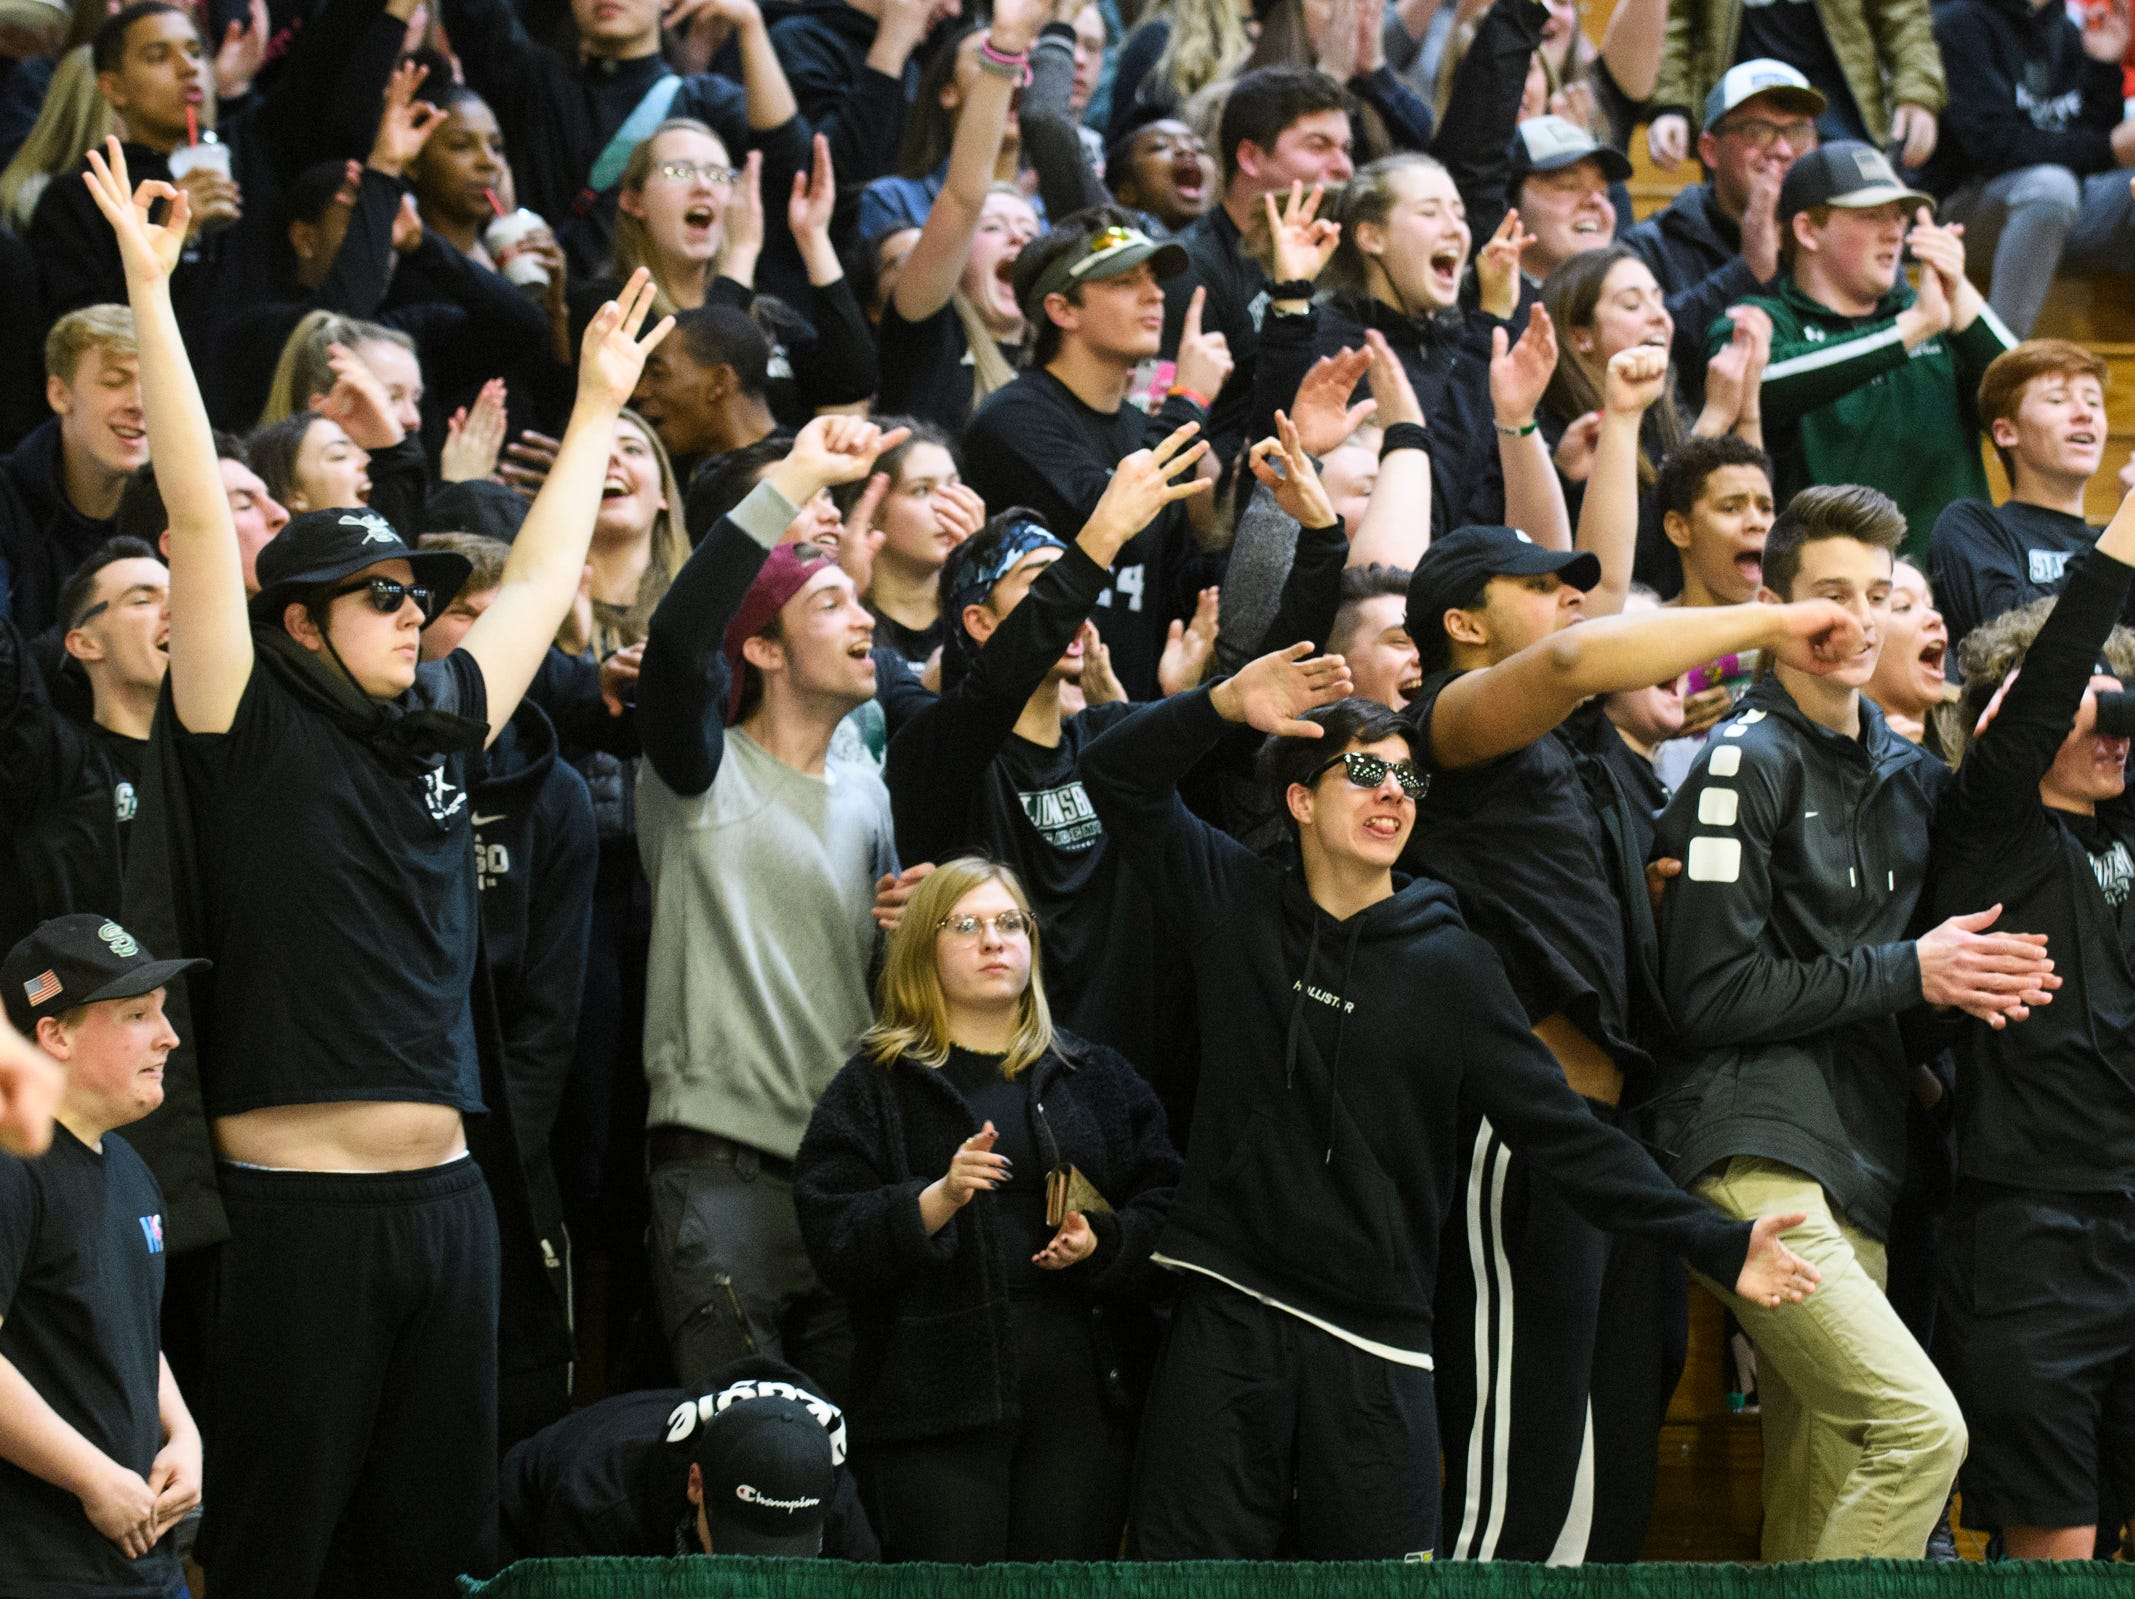 St. Johnsbury fans cheer for the team during the division I girls basketball championship basketball game between the St. Johnsbury Hilltoppers and the Champlain Valley Union Redhawks at Patrick Gym on Sunday afternoon March 10, 2019 in Burlington, Vermont.